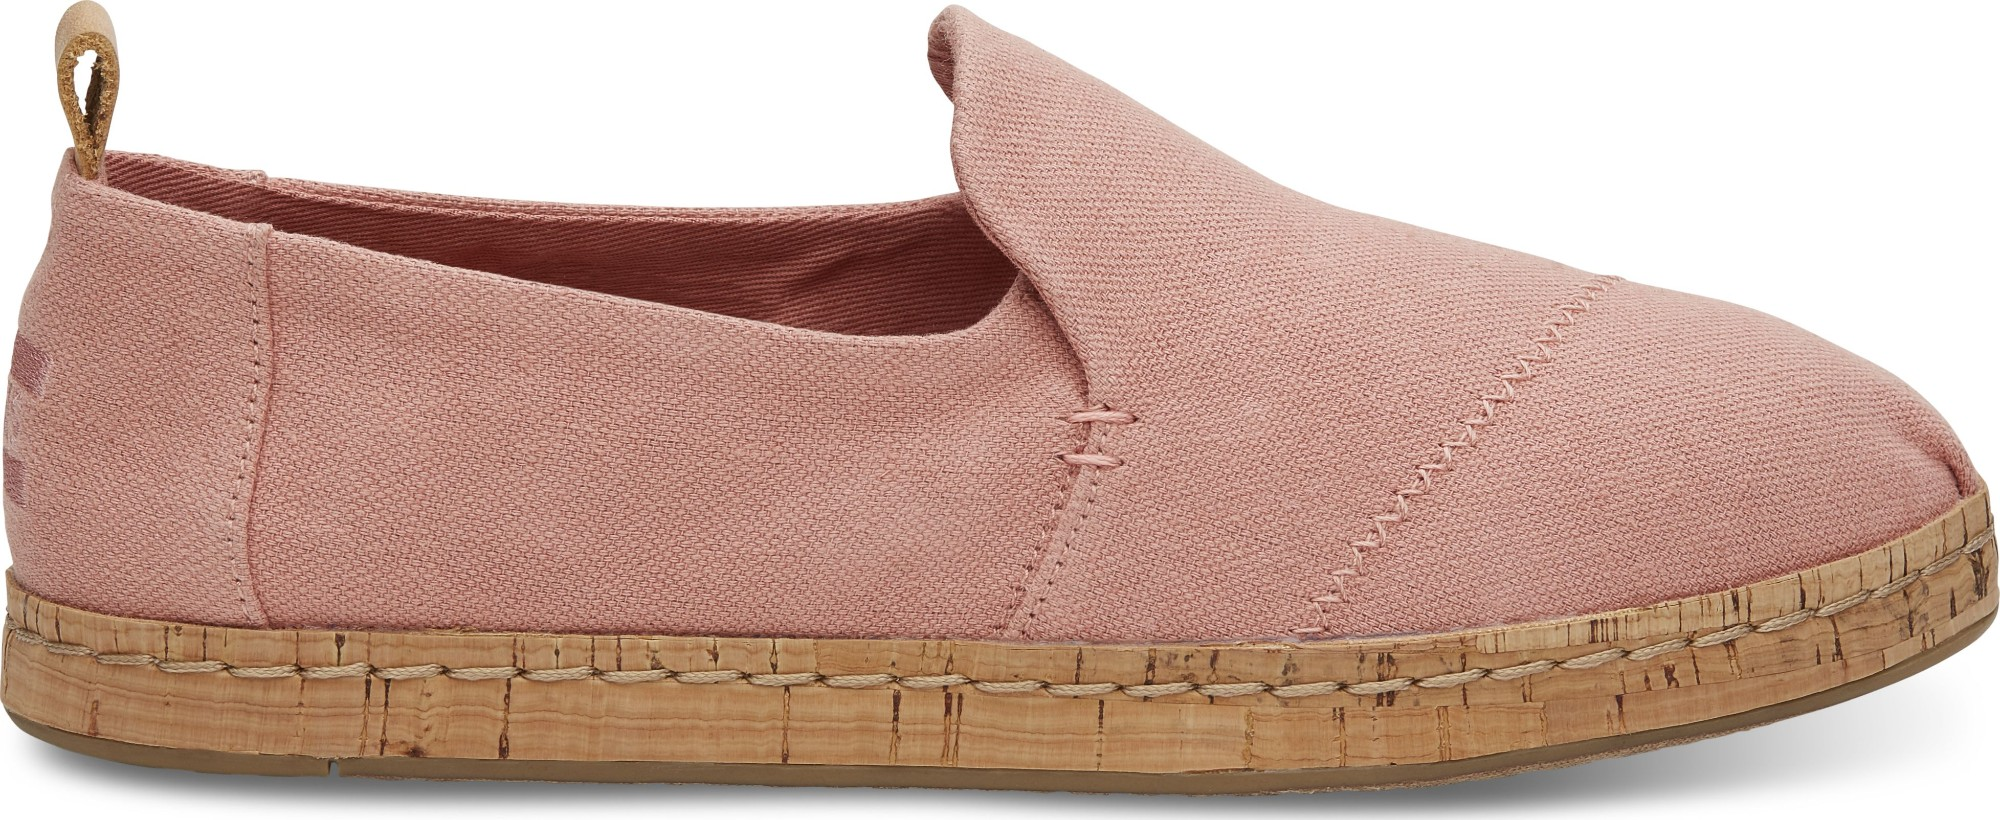 TOMS Oxford Women's Deconstructed Alpargata Cork Bloom 38